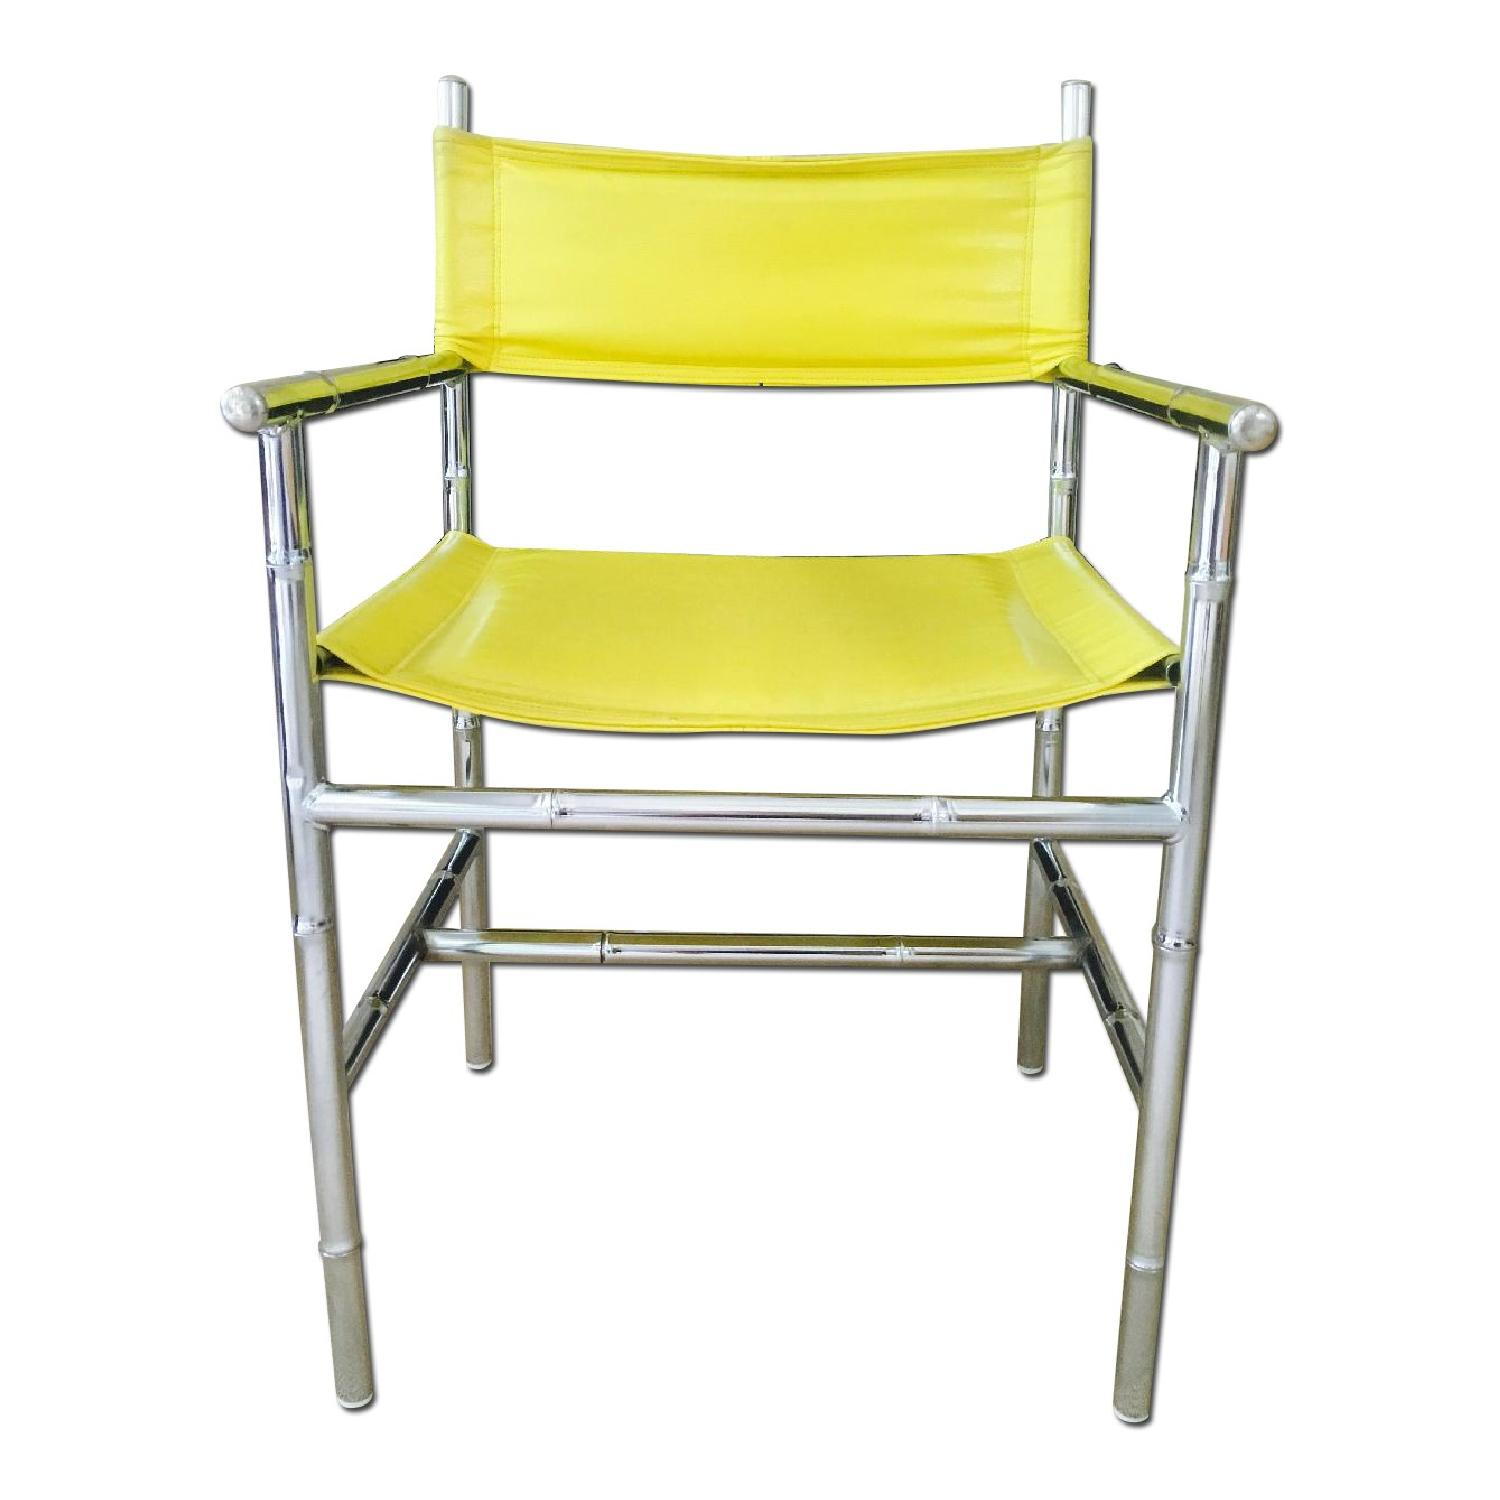 Midcentury Chairs Mid Century Chrome Arm Chair In Yellow Aptdeco